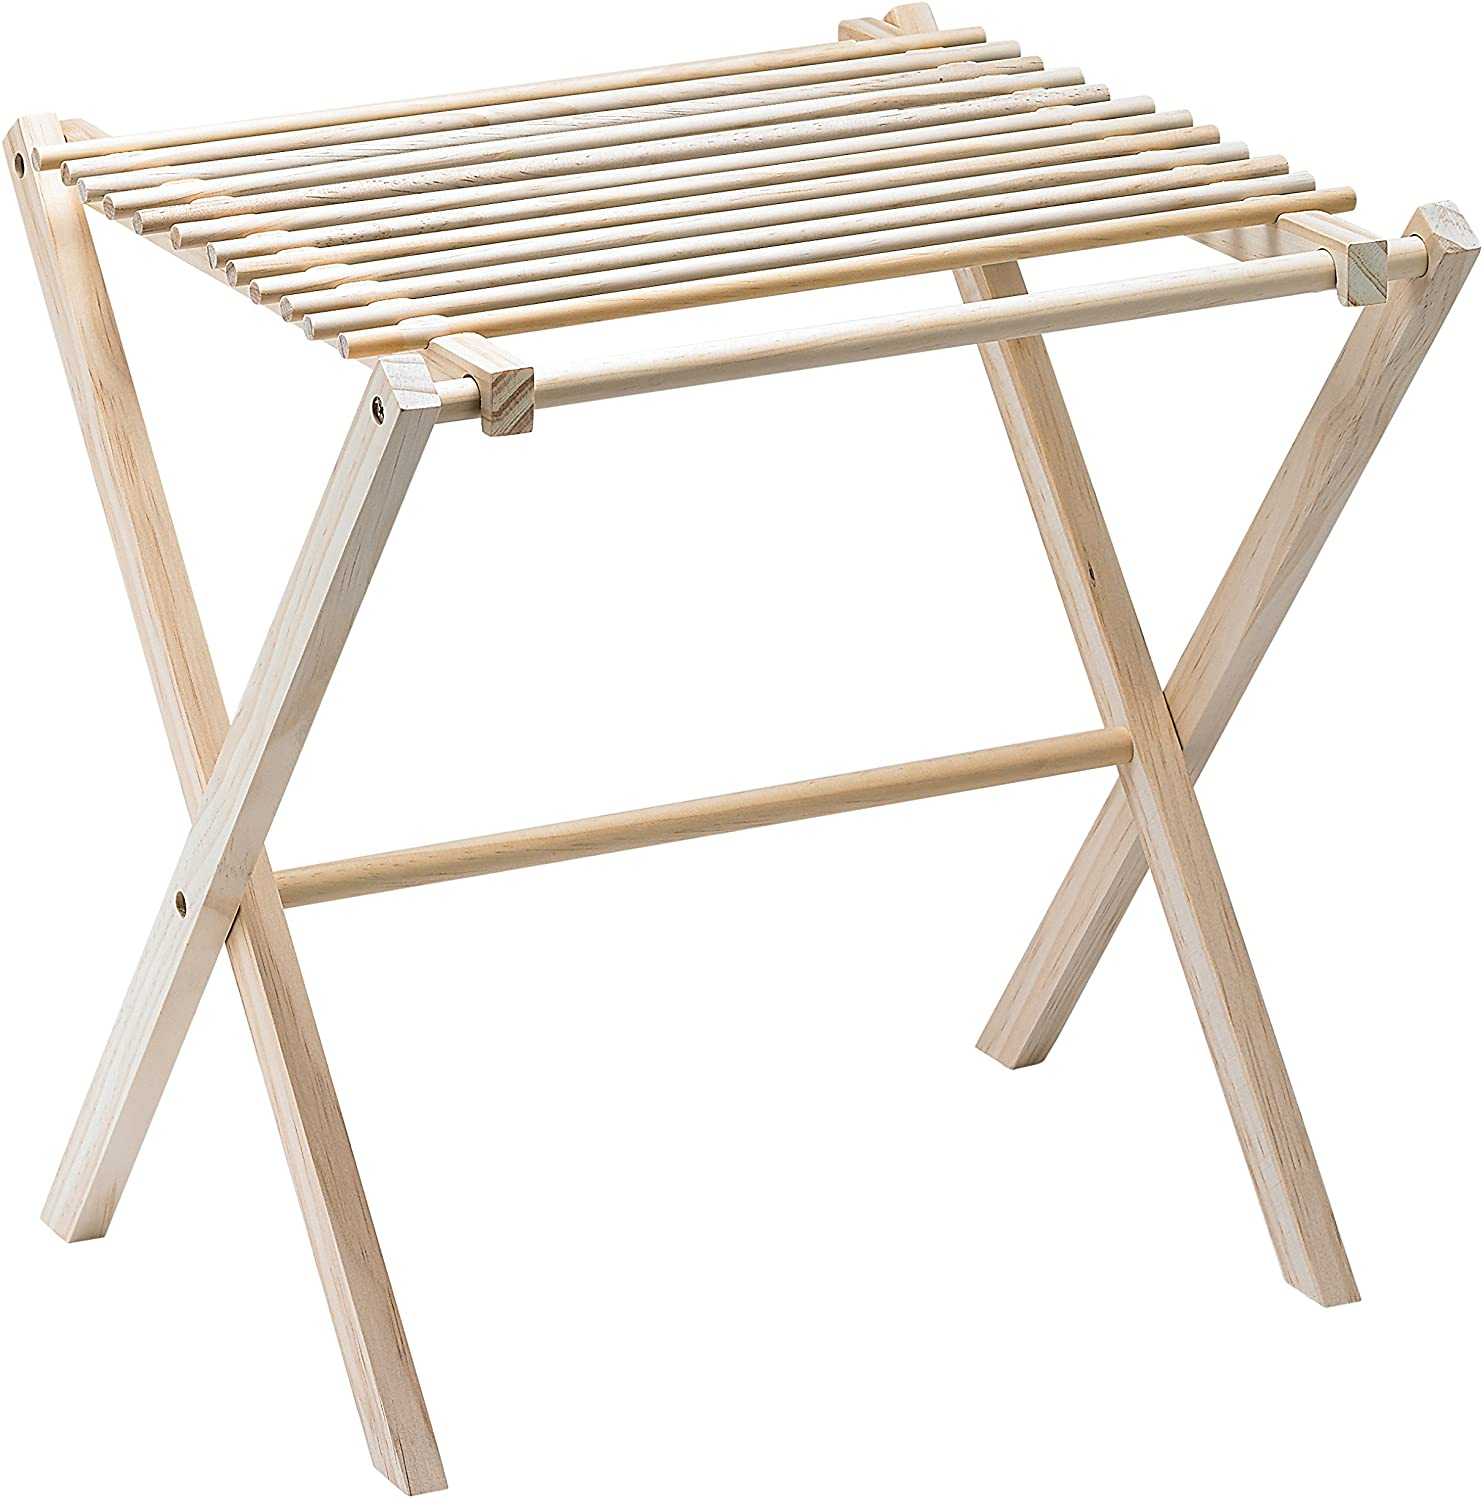 Fante's Collapsible Pasta and Noodle Drying Rack, Natural Wood, 14.5 x 16 x 15-Inches, The Italian Market Original Since 1906